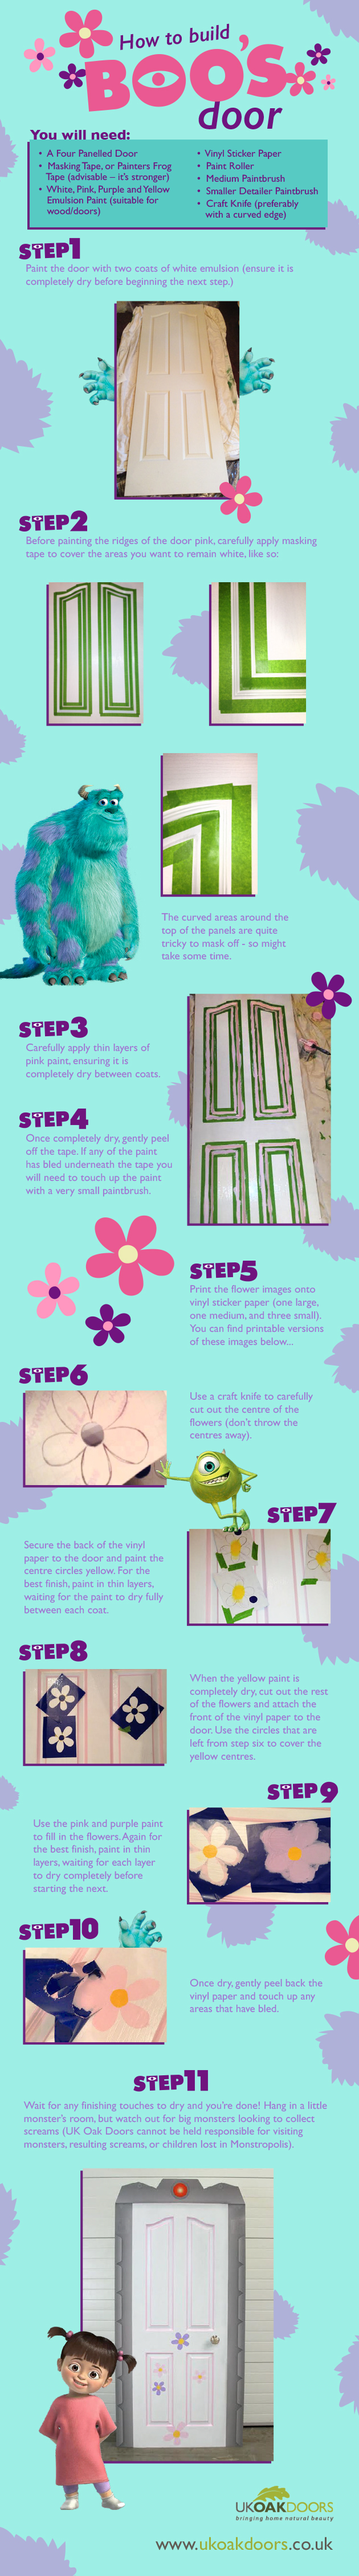 How to Build Boos Door MonstersInc